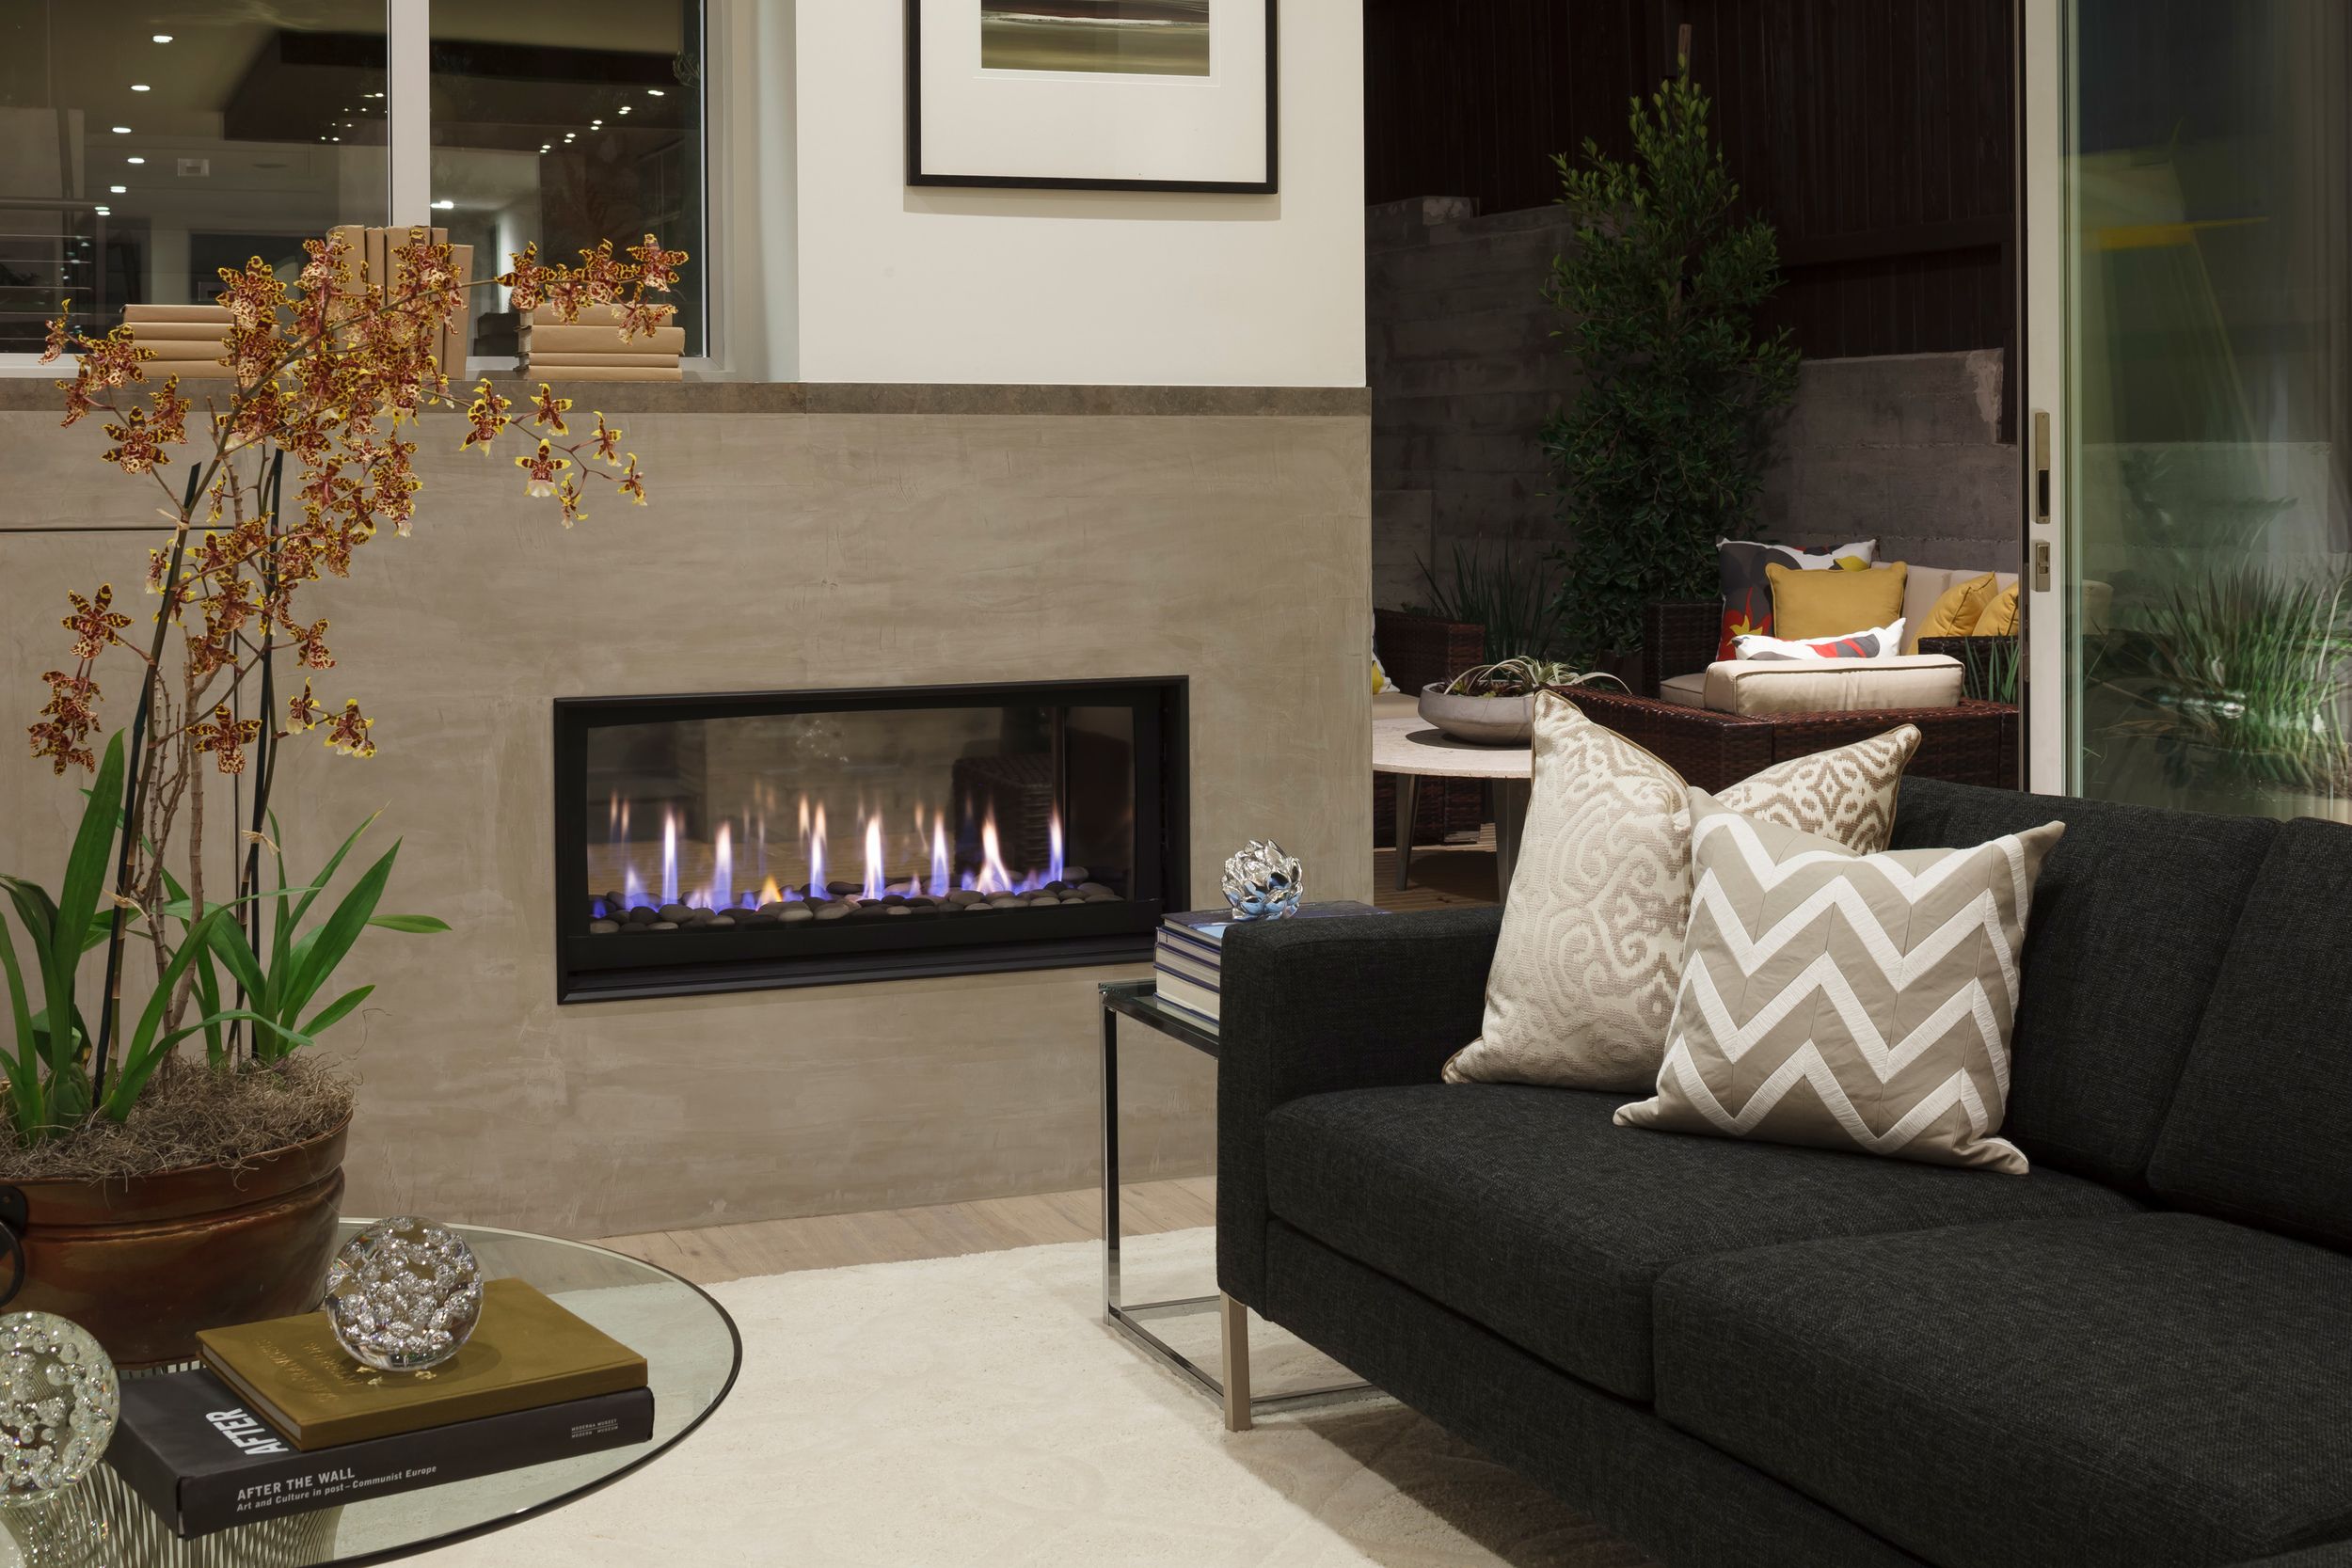 Family_Fireplace_4839.jpg